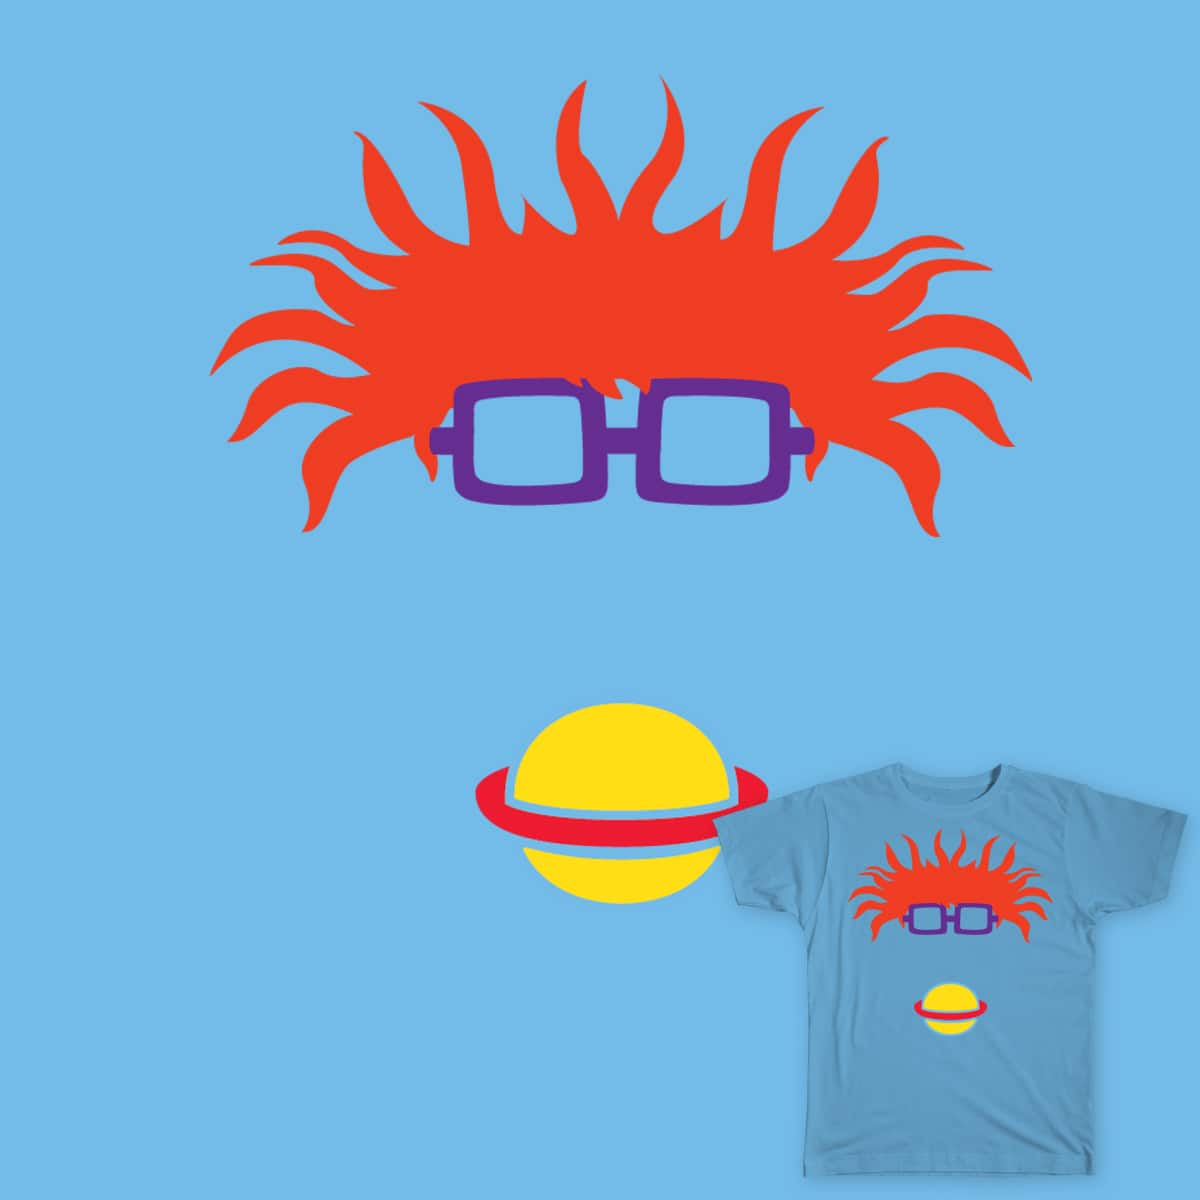 The Finster  by steeld65 on Threadless